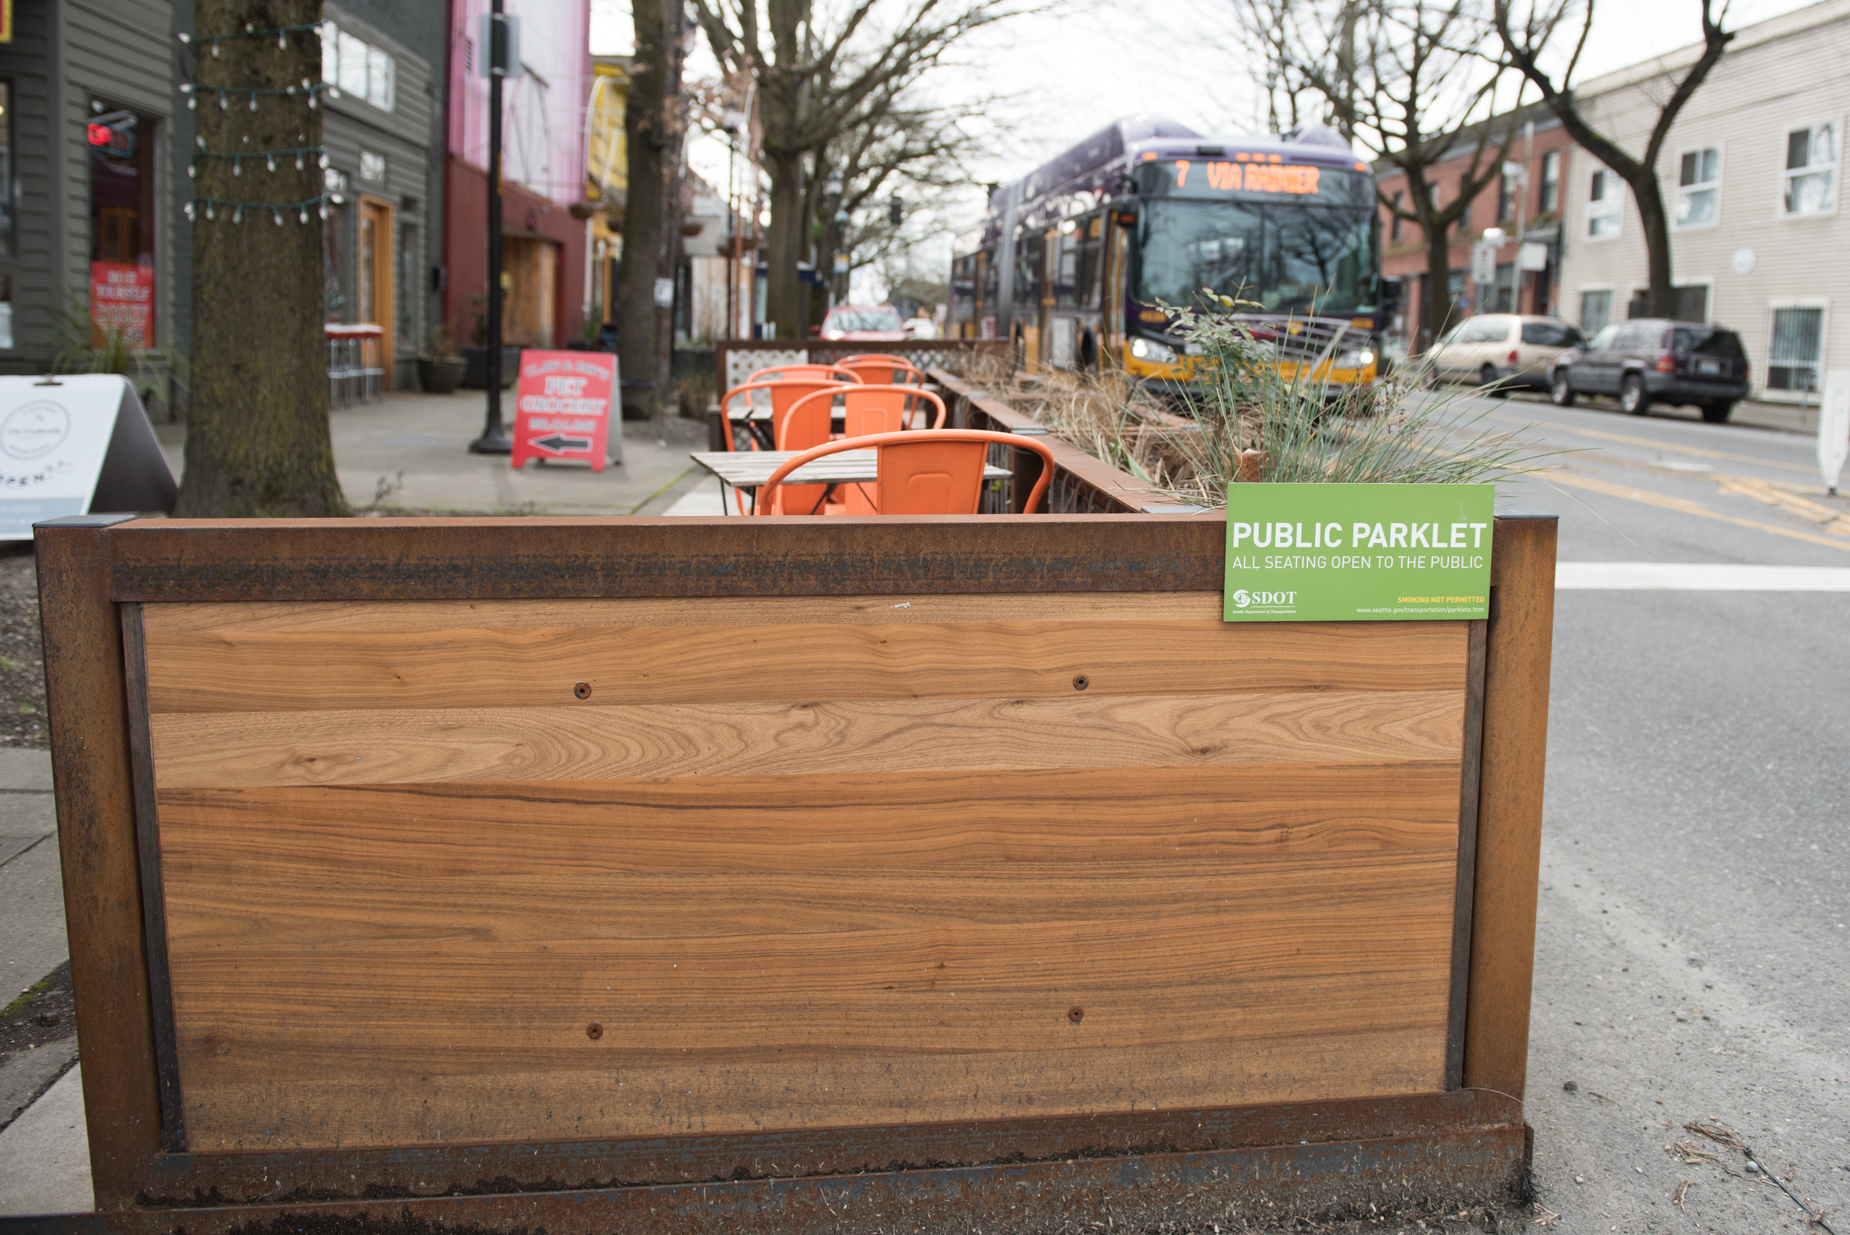 Hillman City Parklet: Burlap sacks from the coffee roaster are used for plantings. The coffee roaster owners thought about putting edible plants in the sacks, then decided against it because of its proximity to traffic. (Image: Natalia Dotto)